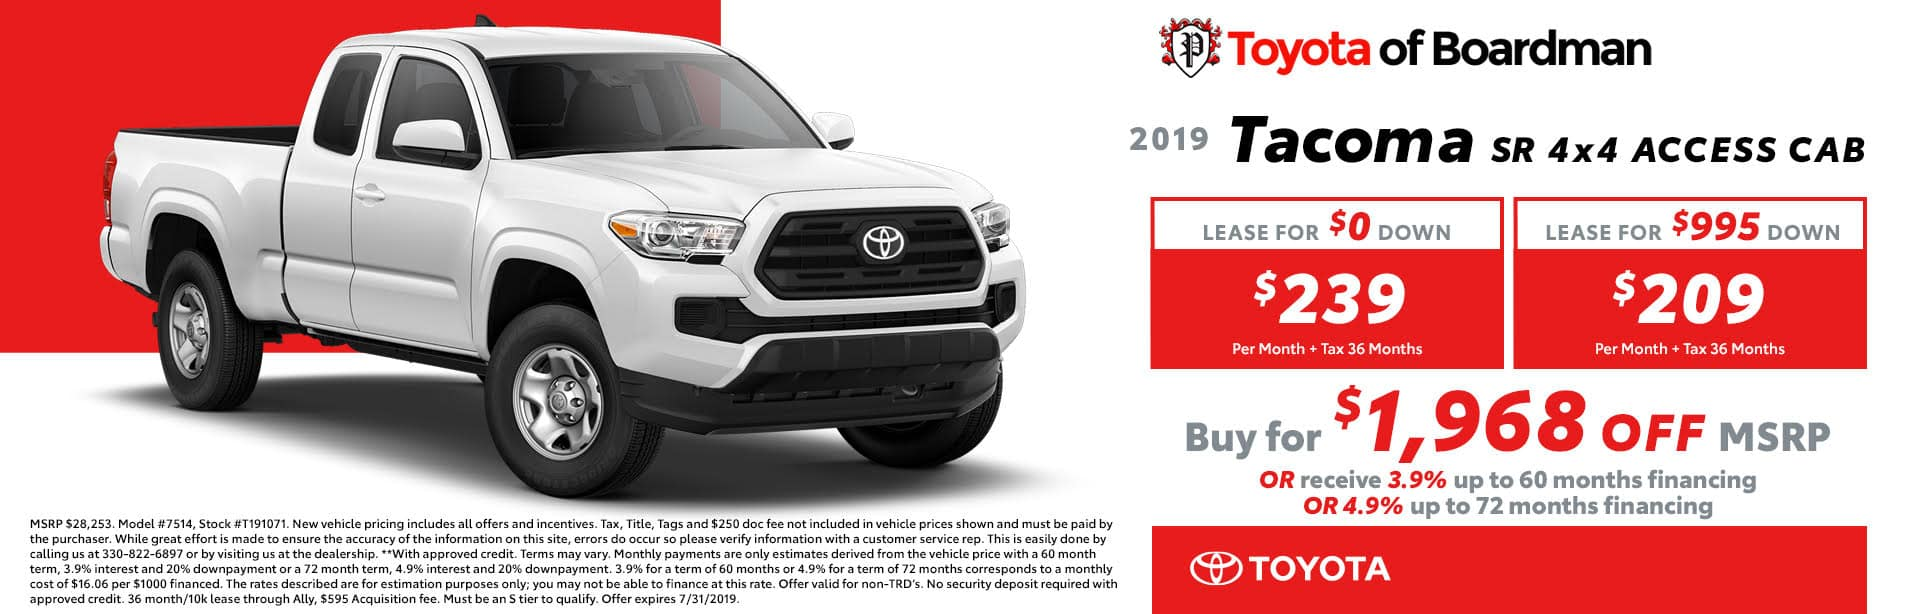 July special on the 2019 Toyota Tacoma